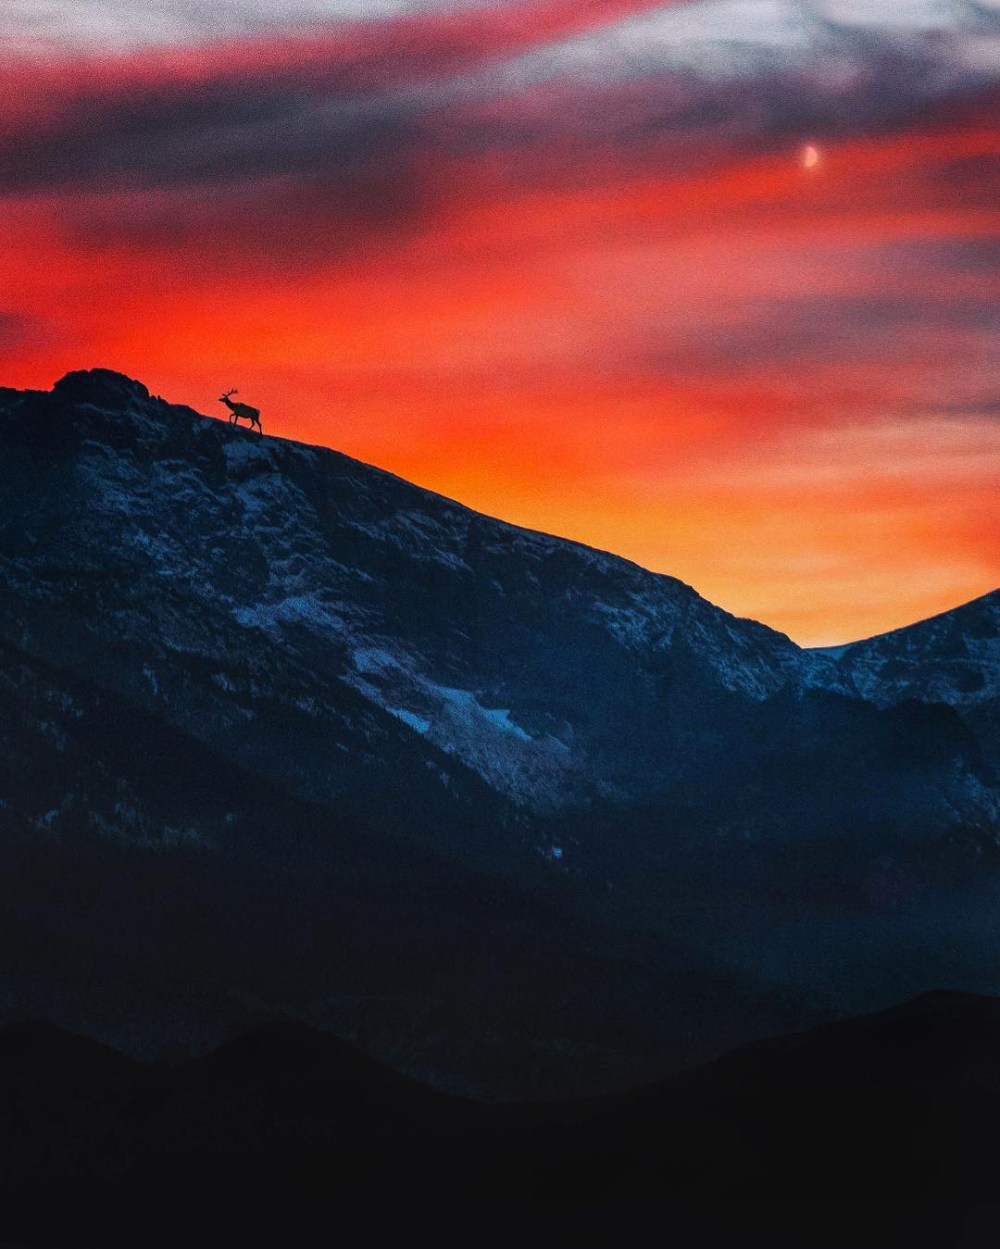 """Rocky Mountain National Park in Colorado encourages you to follow your wild spirit and see what's over the horizon. In any season, the views are epic and the experiences are unforgettable. Stopping to take a picture of one of the most beautiful sunsets he'd ever seen, photographer Brandon Sharpe noticed """"an elk doing his thing"""" and snapped this incredible image. Photo by of Brandon Sharpe. Posted on Tumblr by the US Department of the Interior, 2/11/17."""